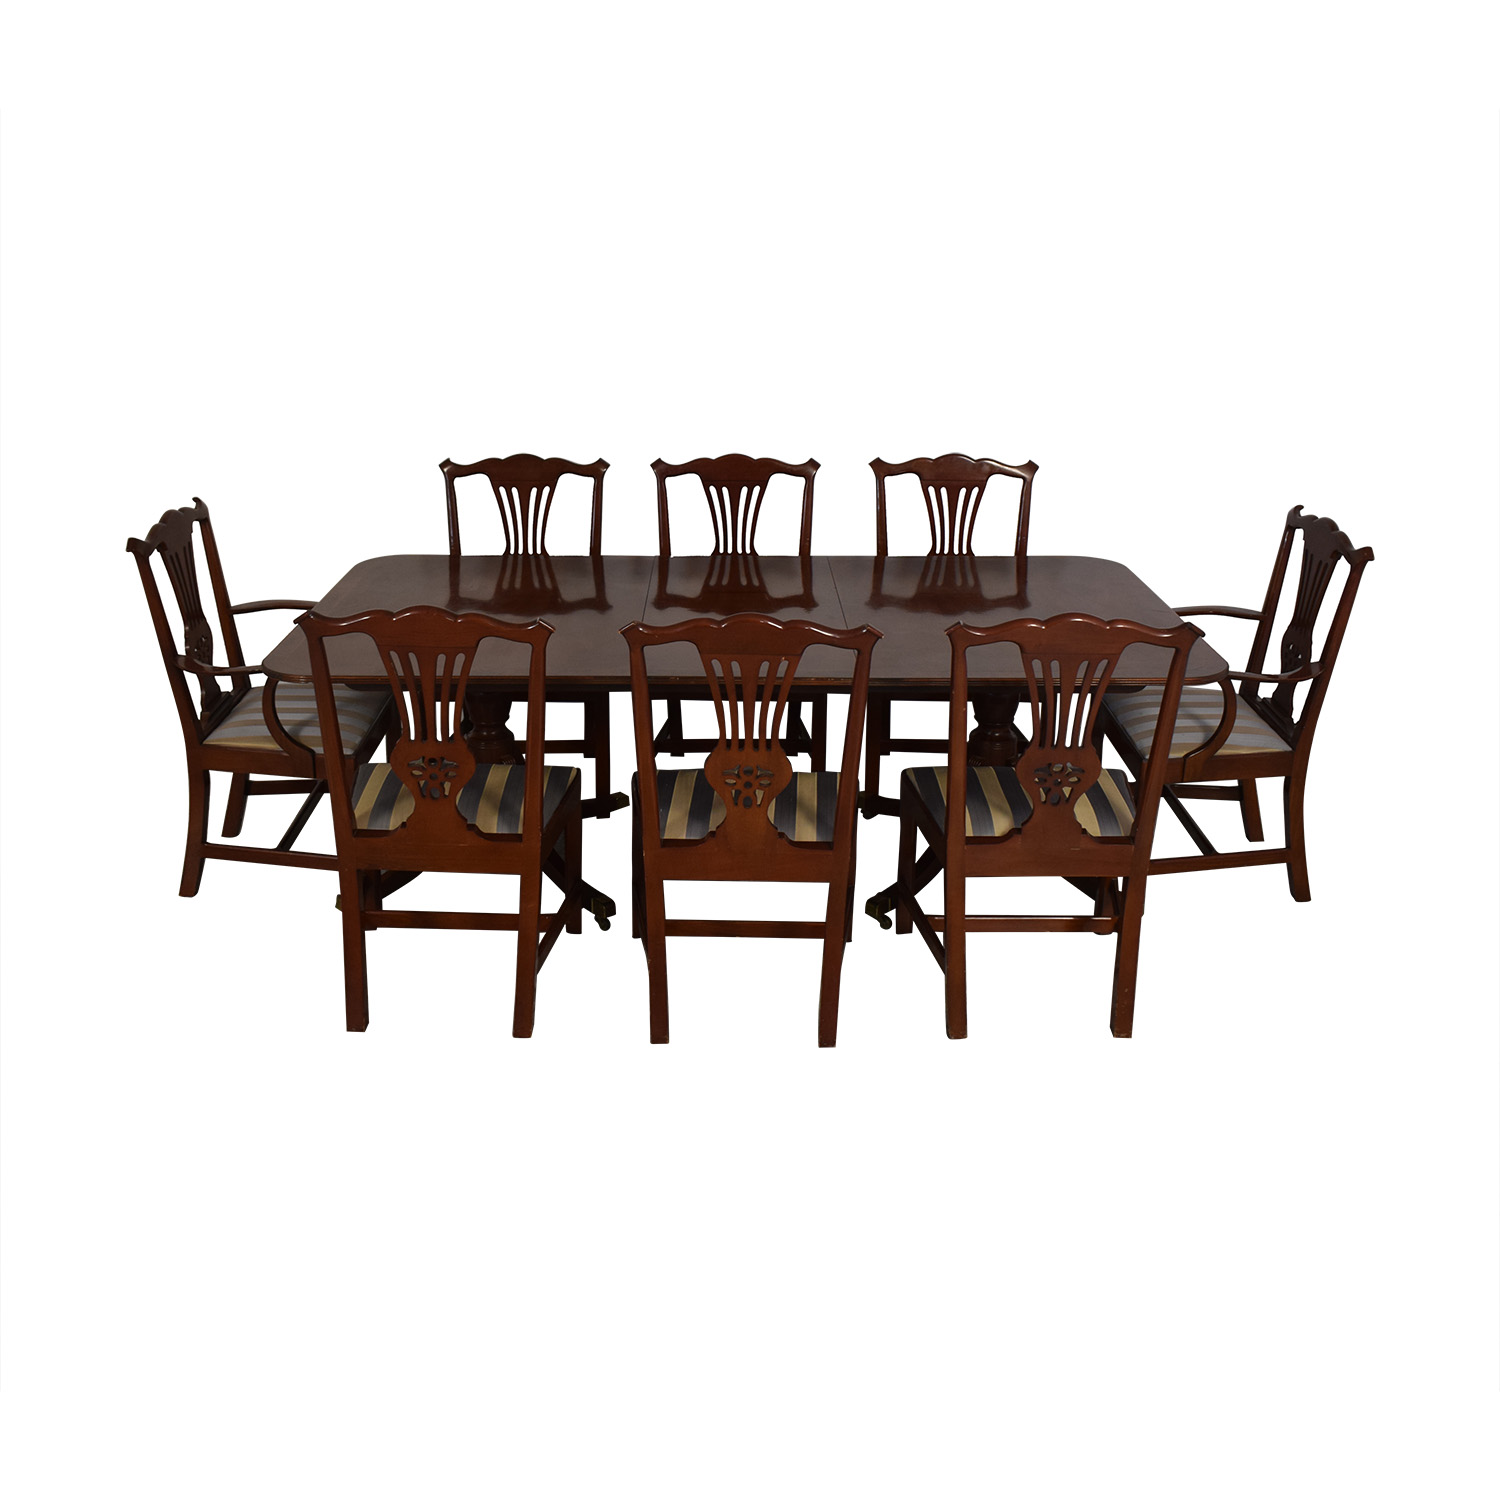 Baker Furniture Dining Room Table and Chairs sale